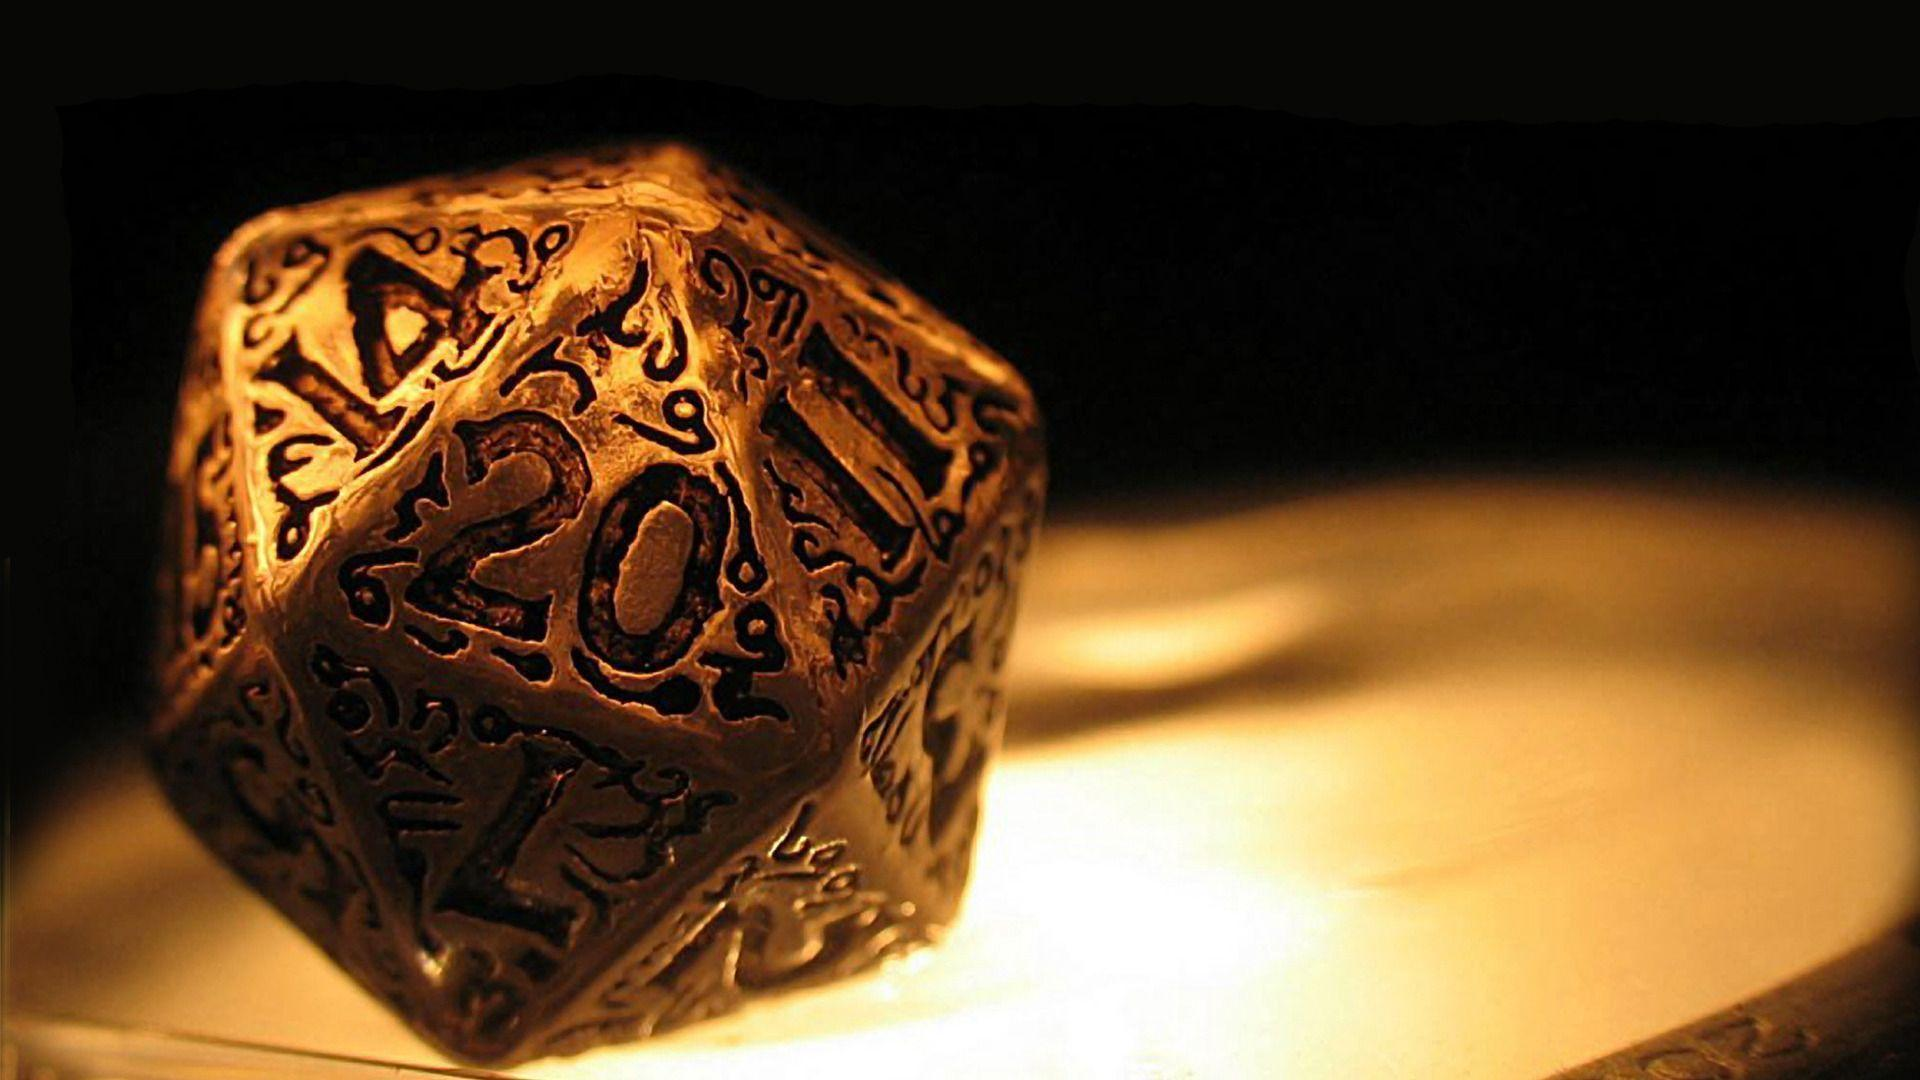 Dungeons & Dragons Dice Roller wallpapers #